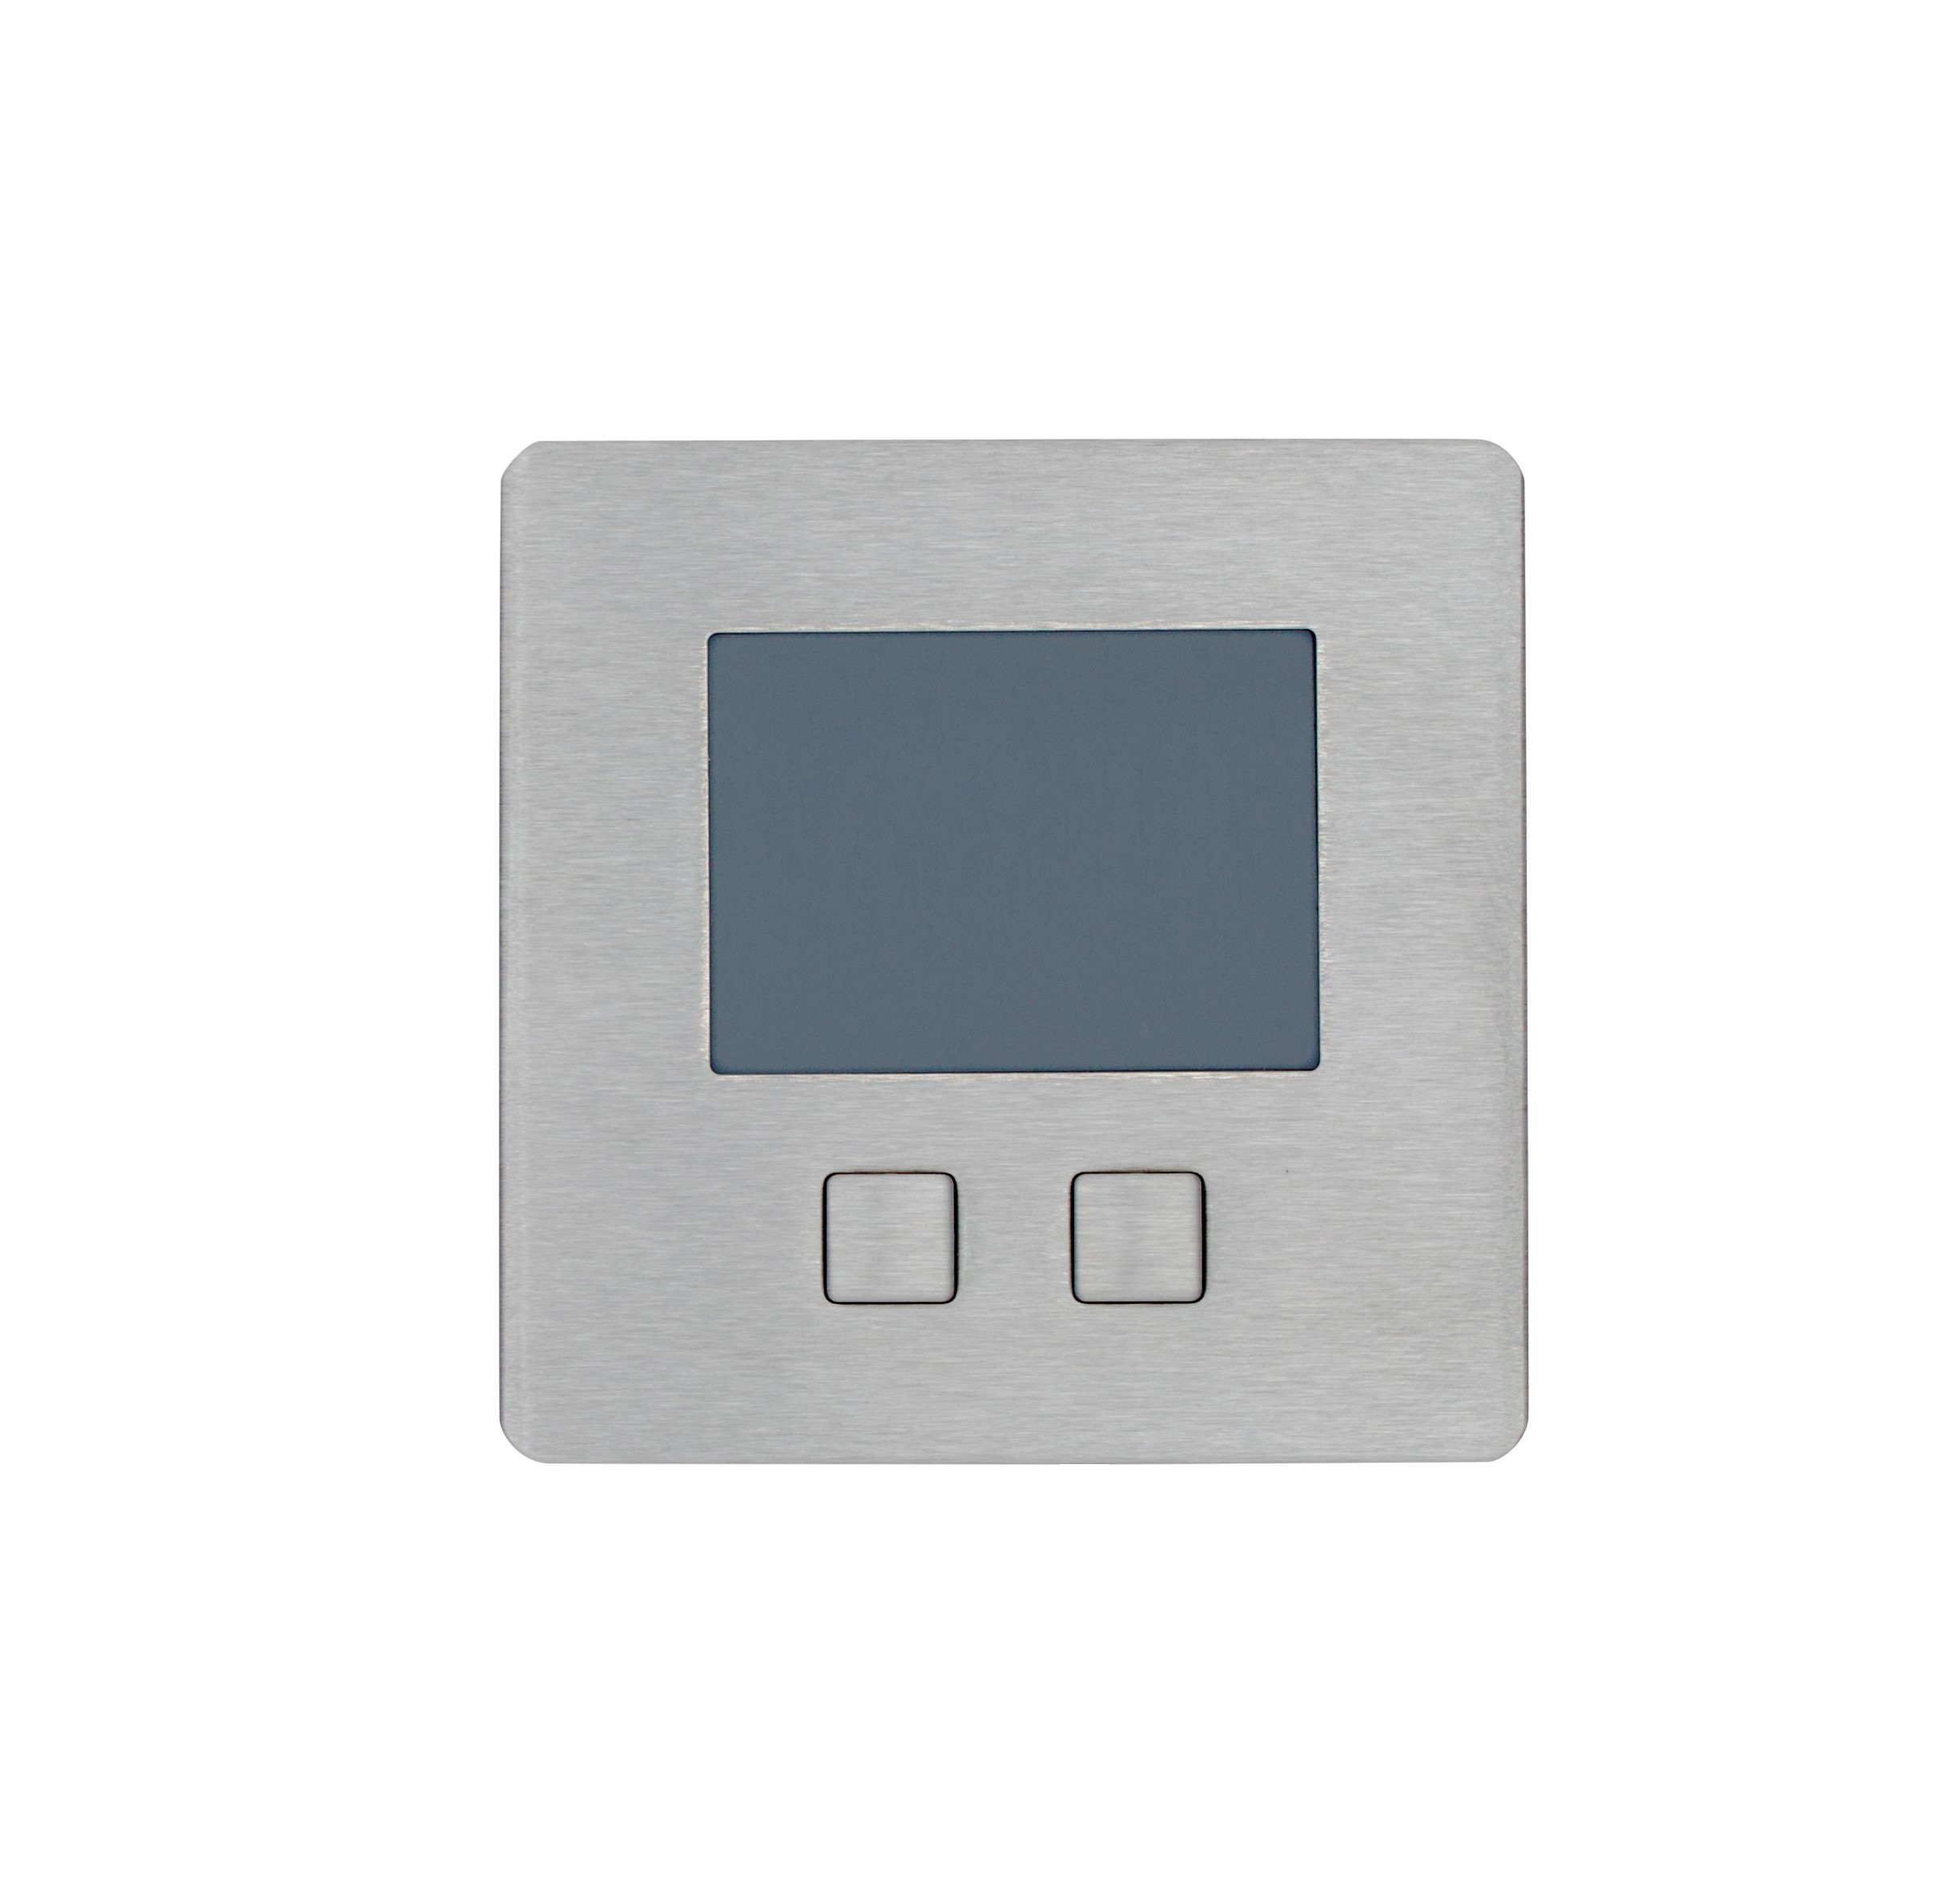 Touch pad module